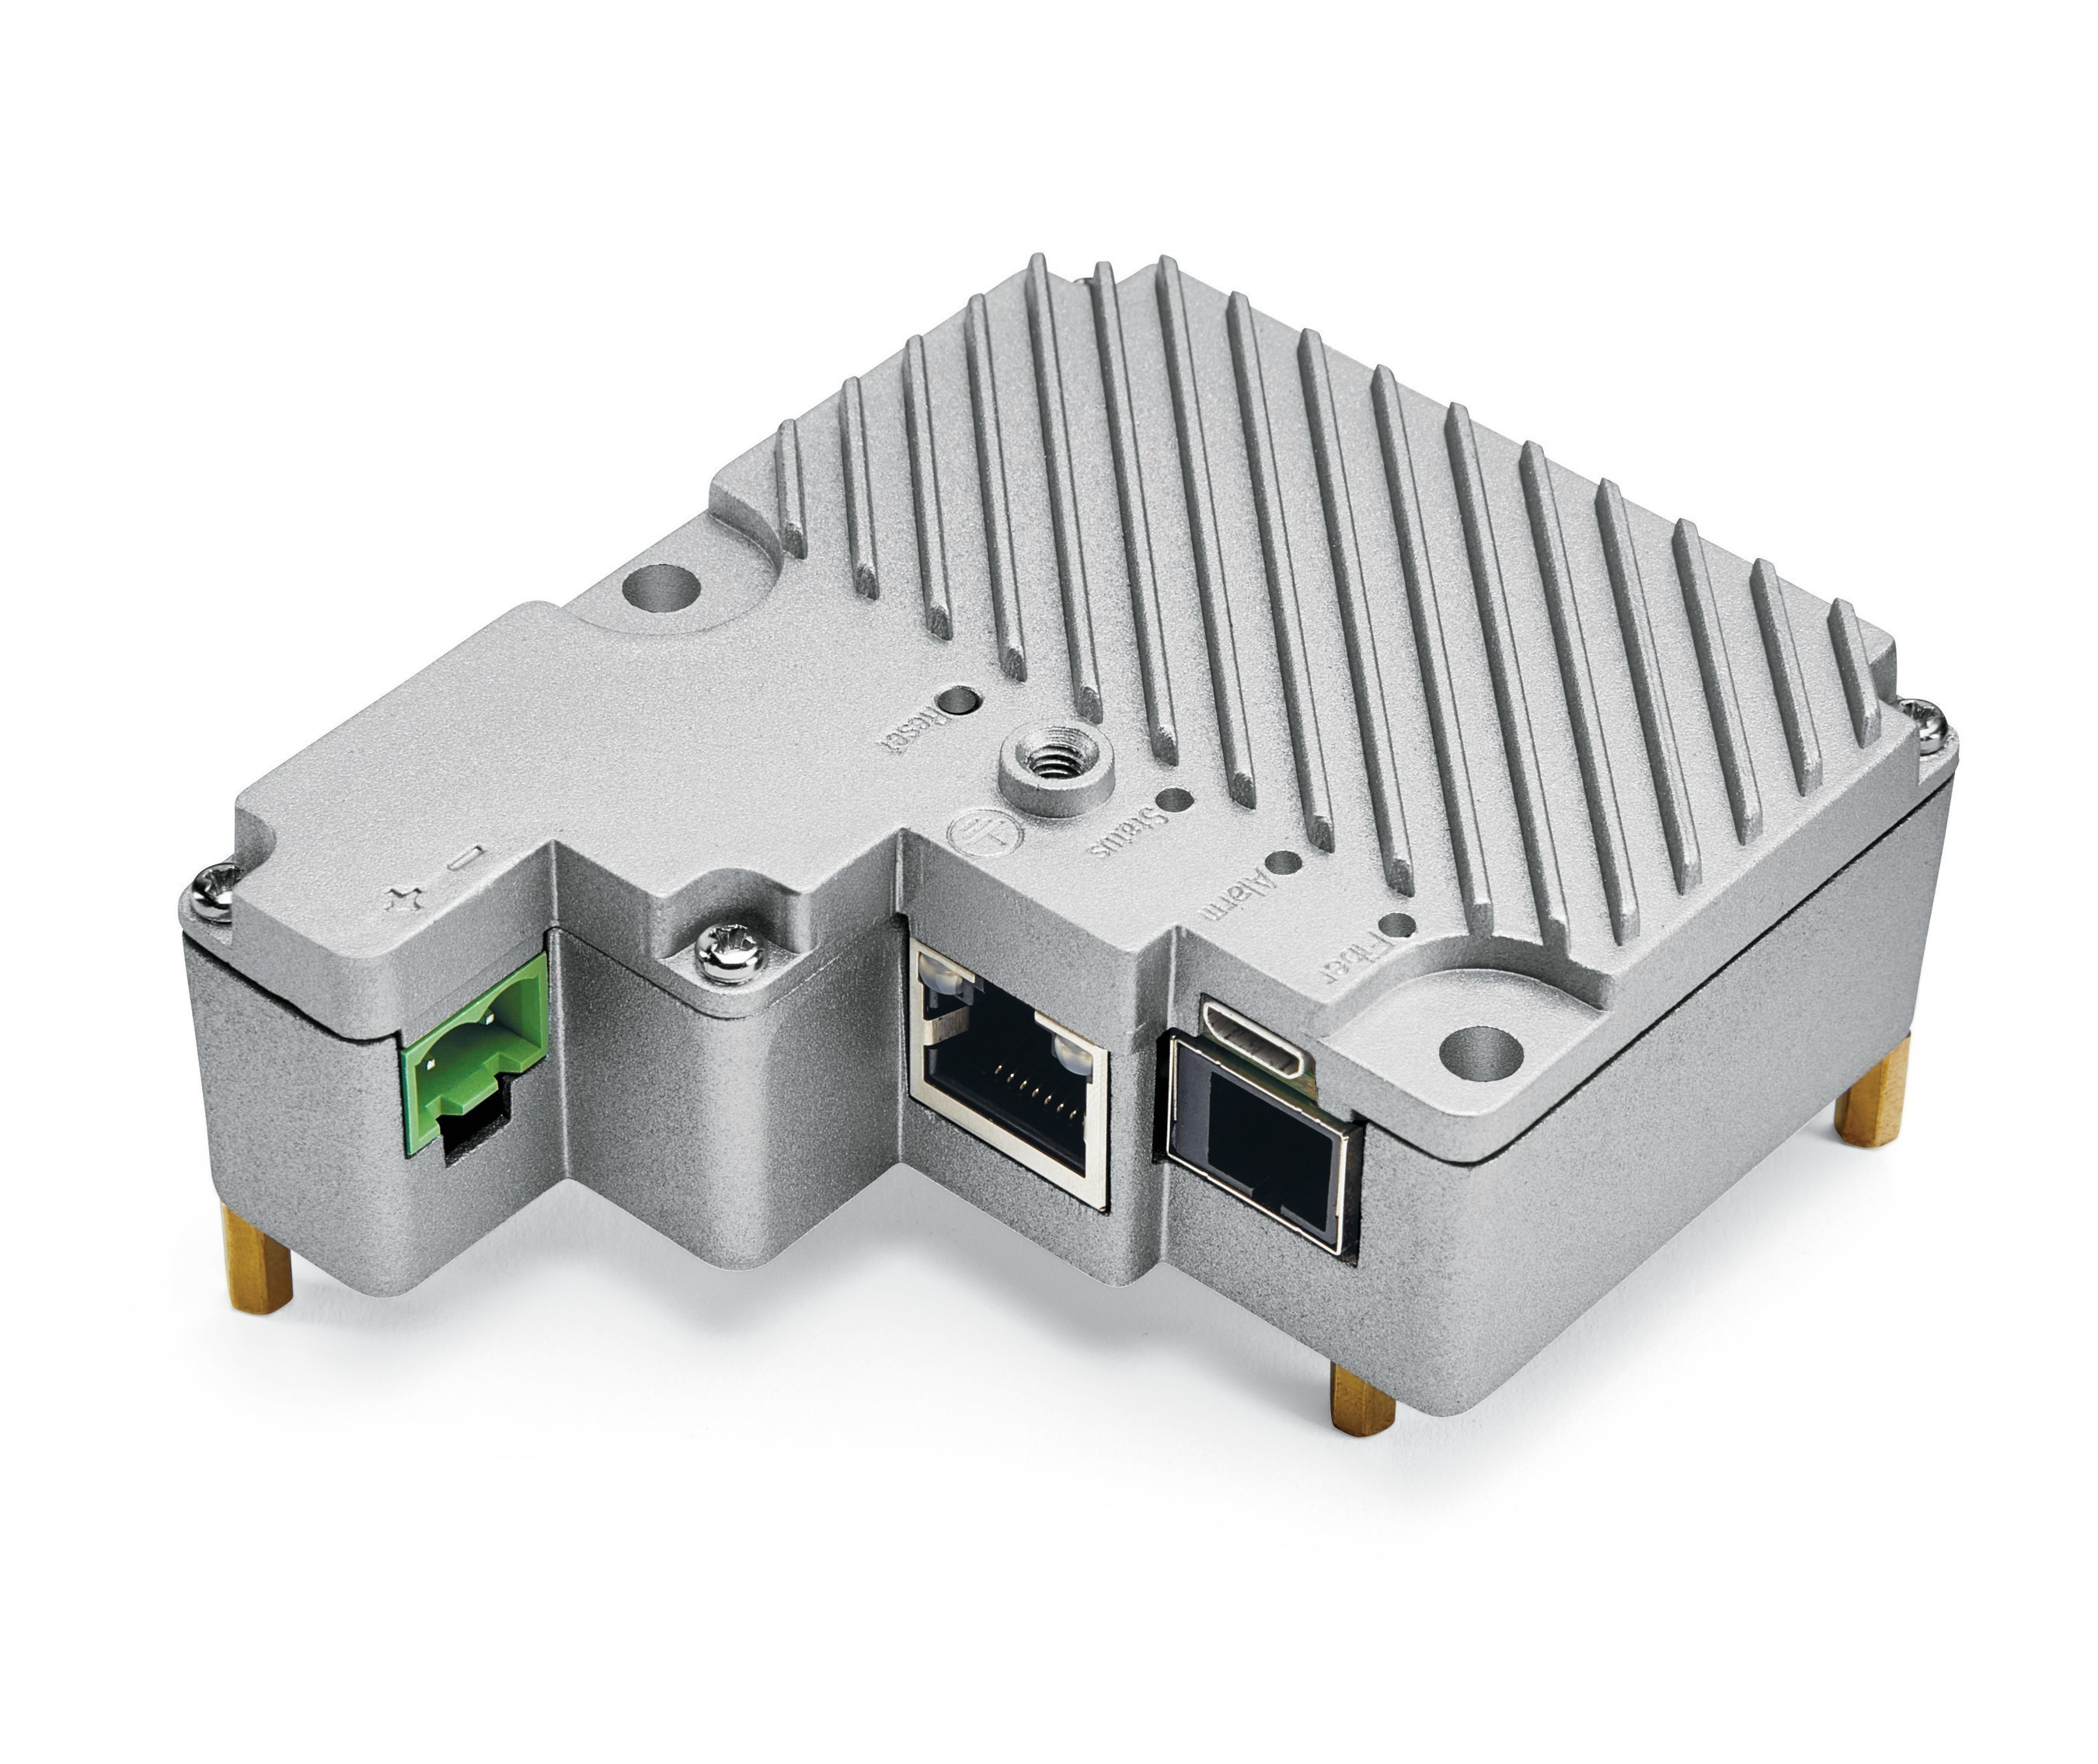 New 2101P One-Port ONT From Zhone Technologies Designed for